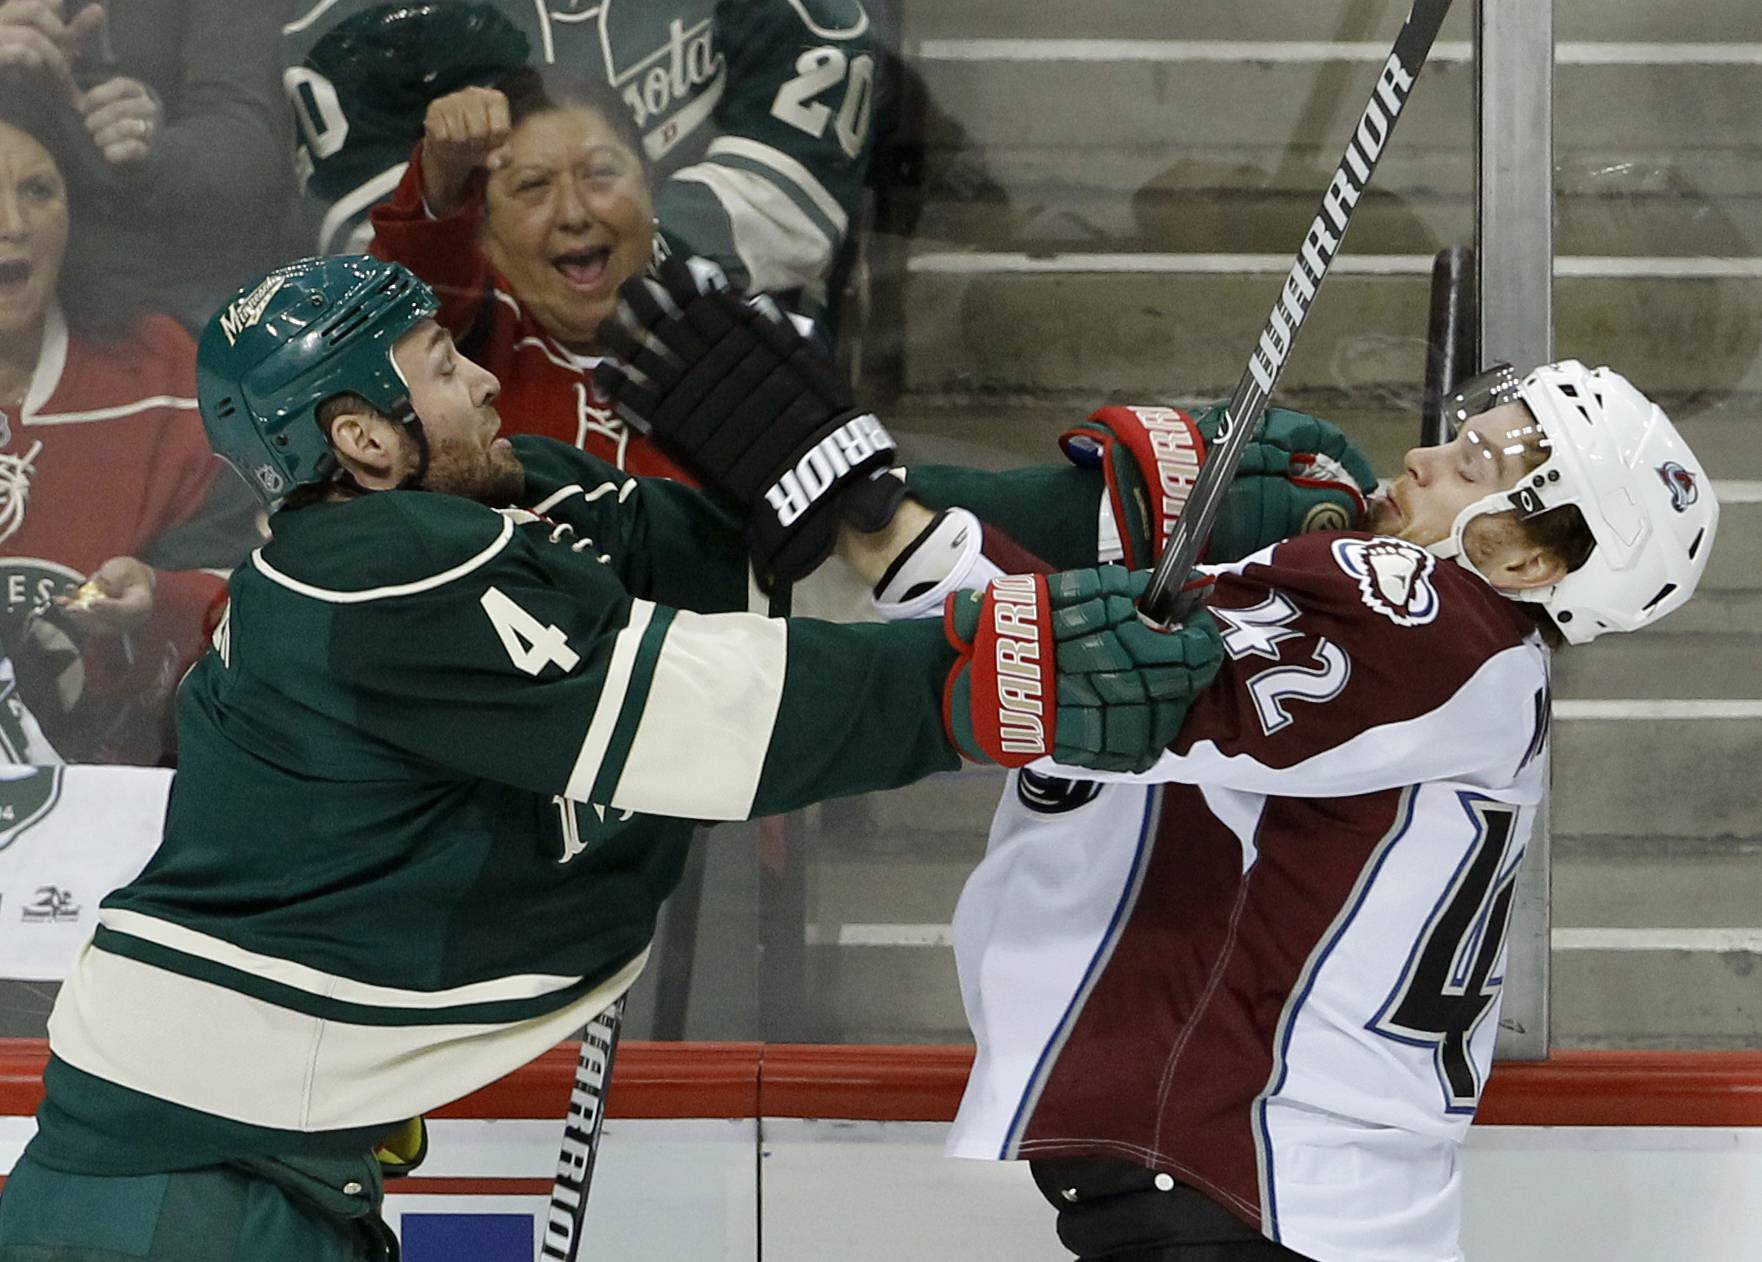 Minnesota Wild defenseman Clayton Stoner (4) shoves Colorado Avalanche center Brad Malone (42) during the first period of Game 3 of an NHL hockey first-round playoff series in St. Paul, Minn., Monday, April 21, 2014.